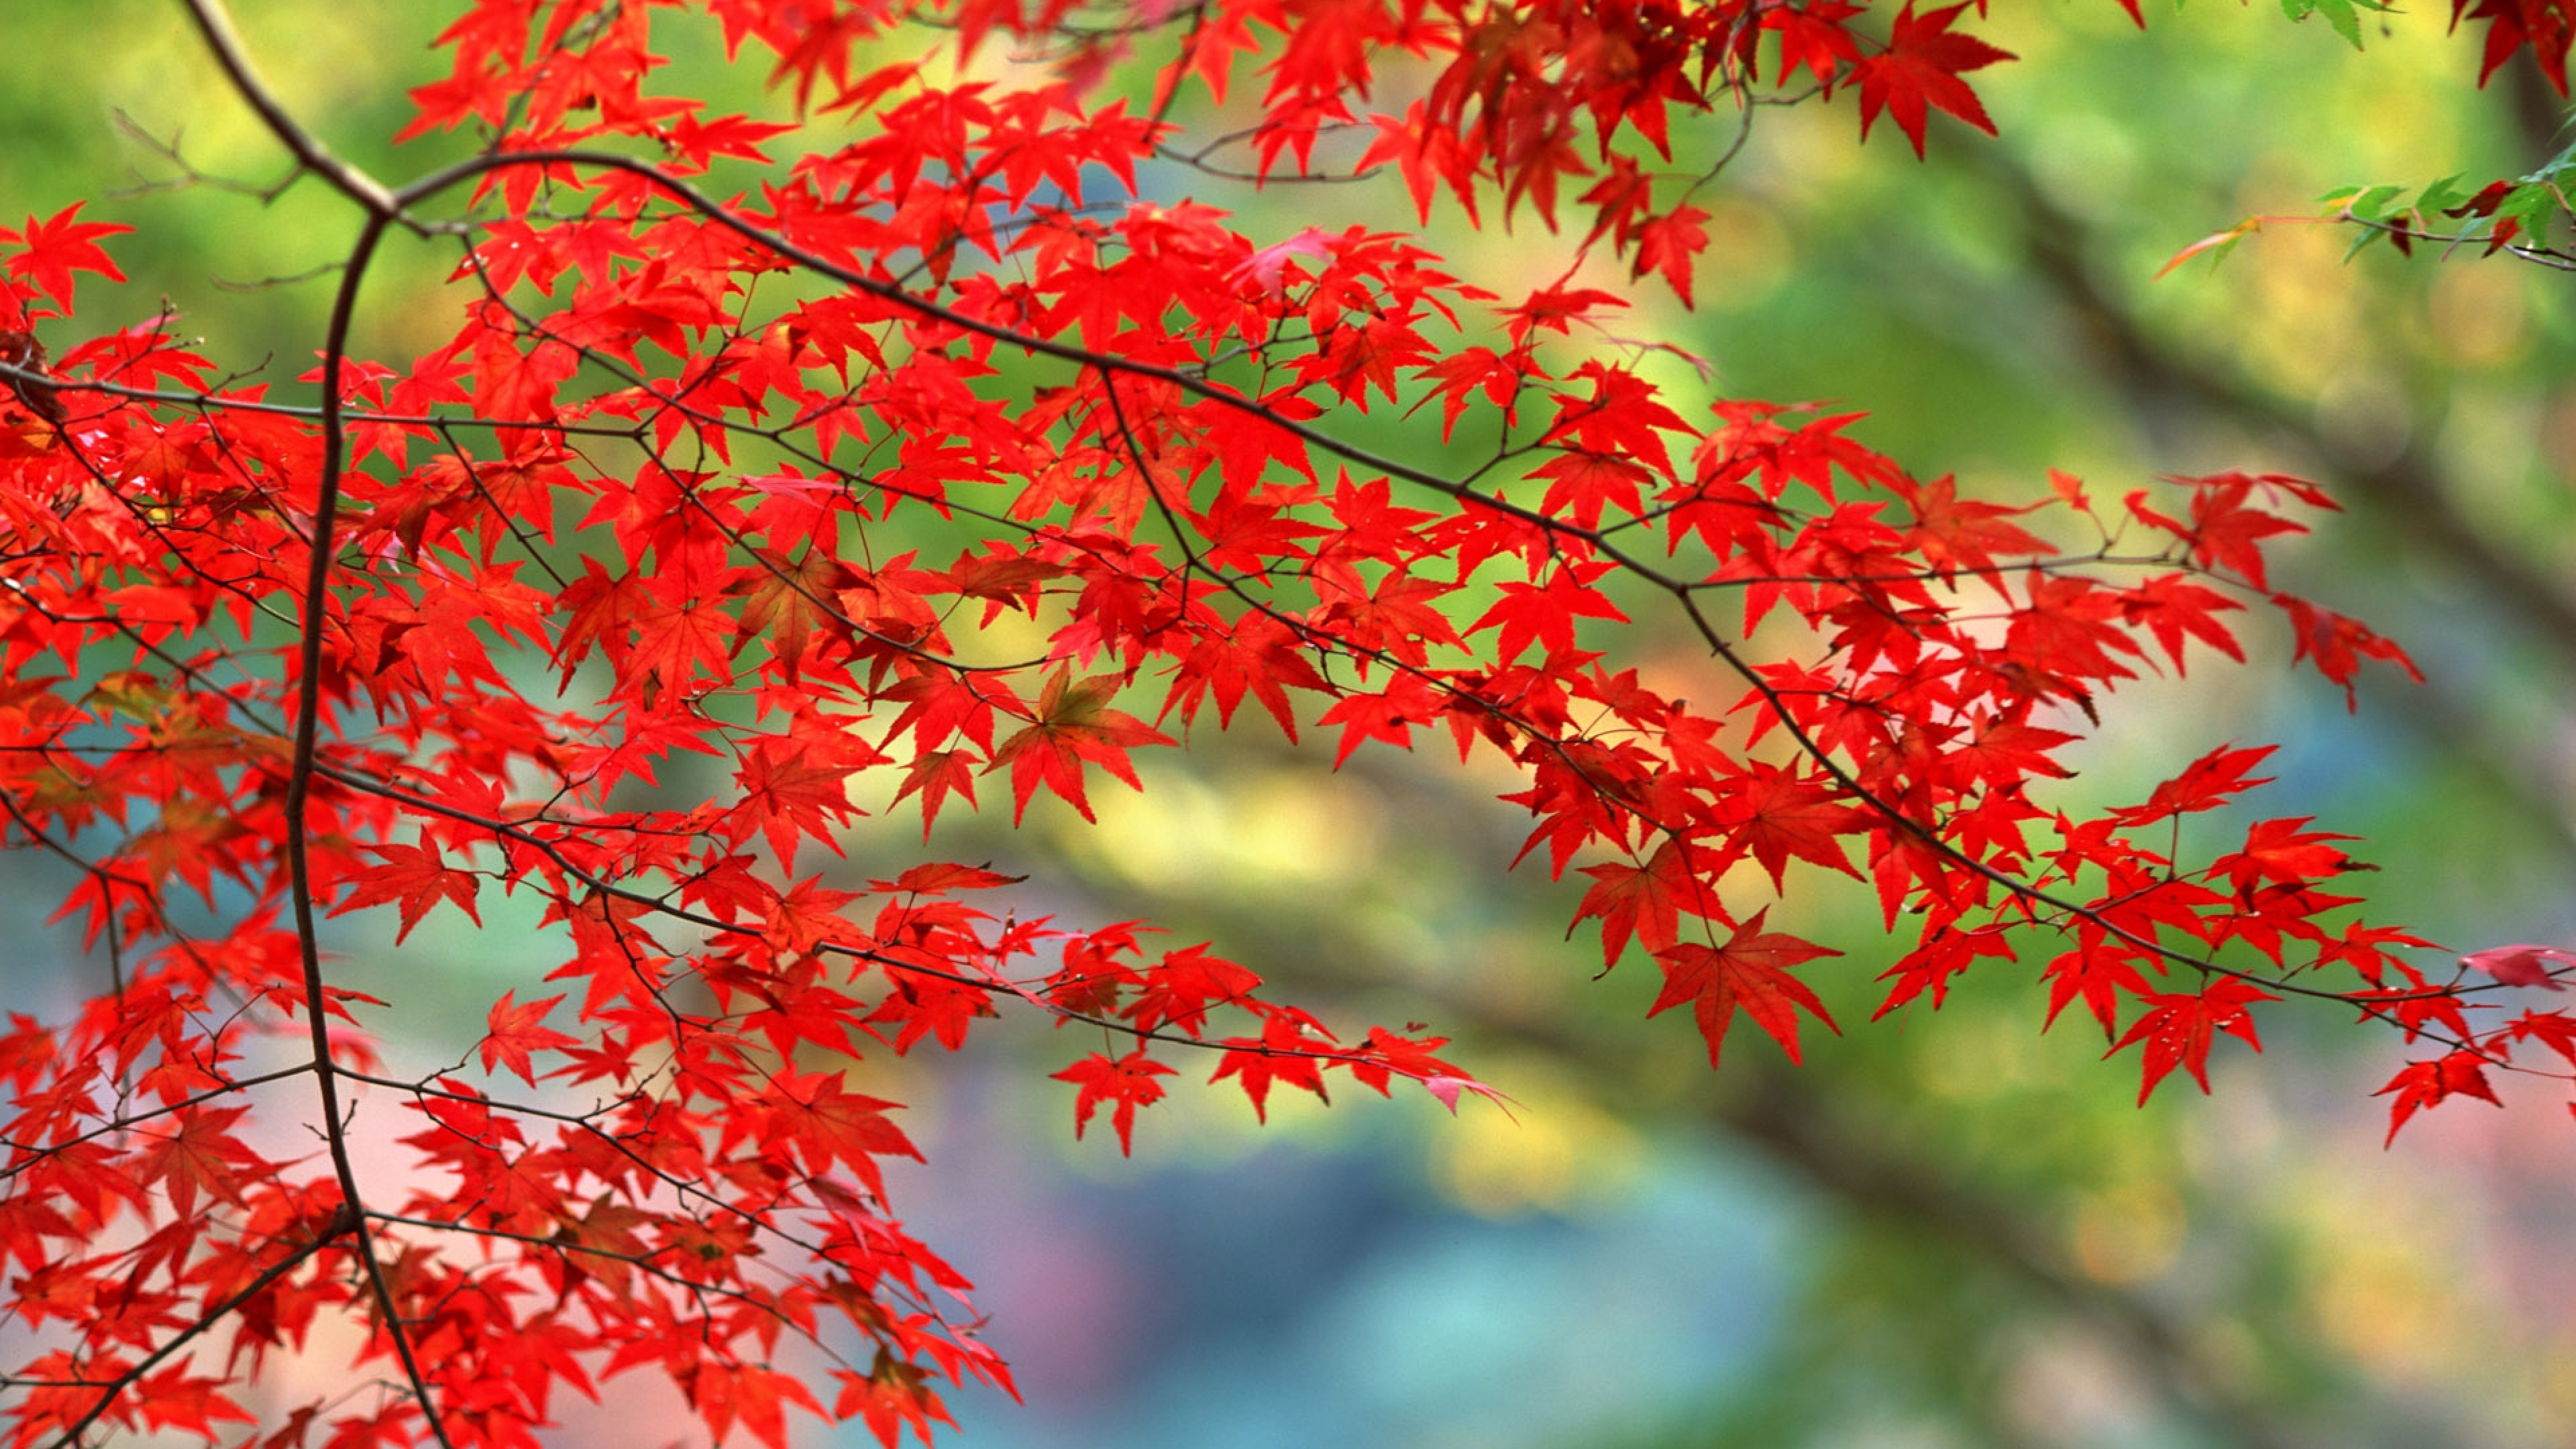 autumn leaves 1535924083 - Autumn Leaves - nature wallpapers, leaves wallpapers, autumn wallpapers